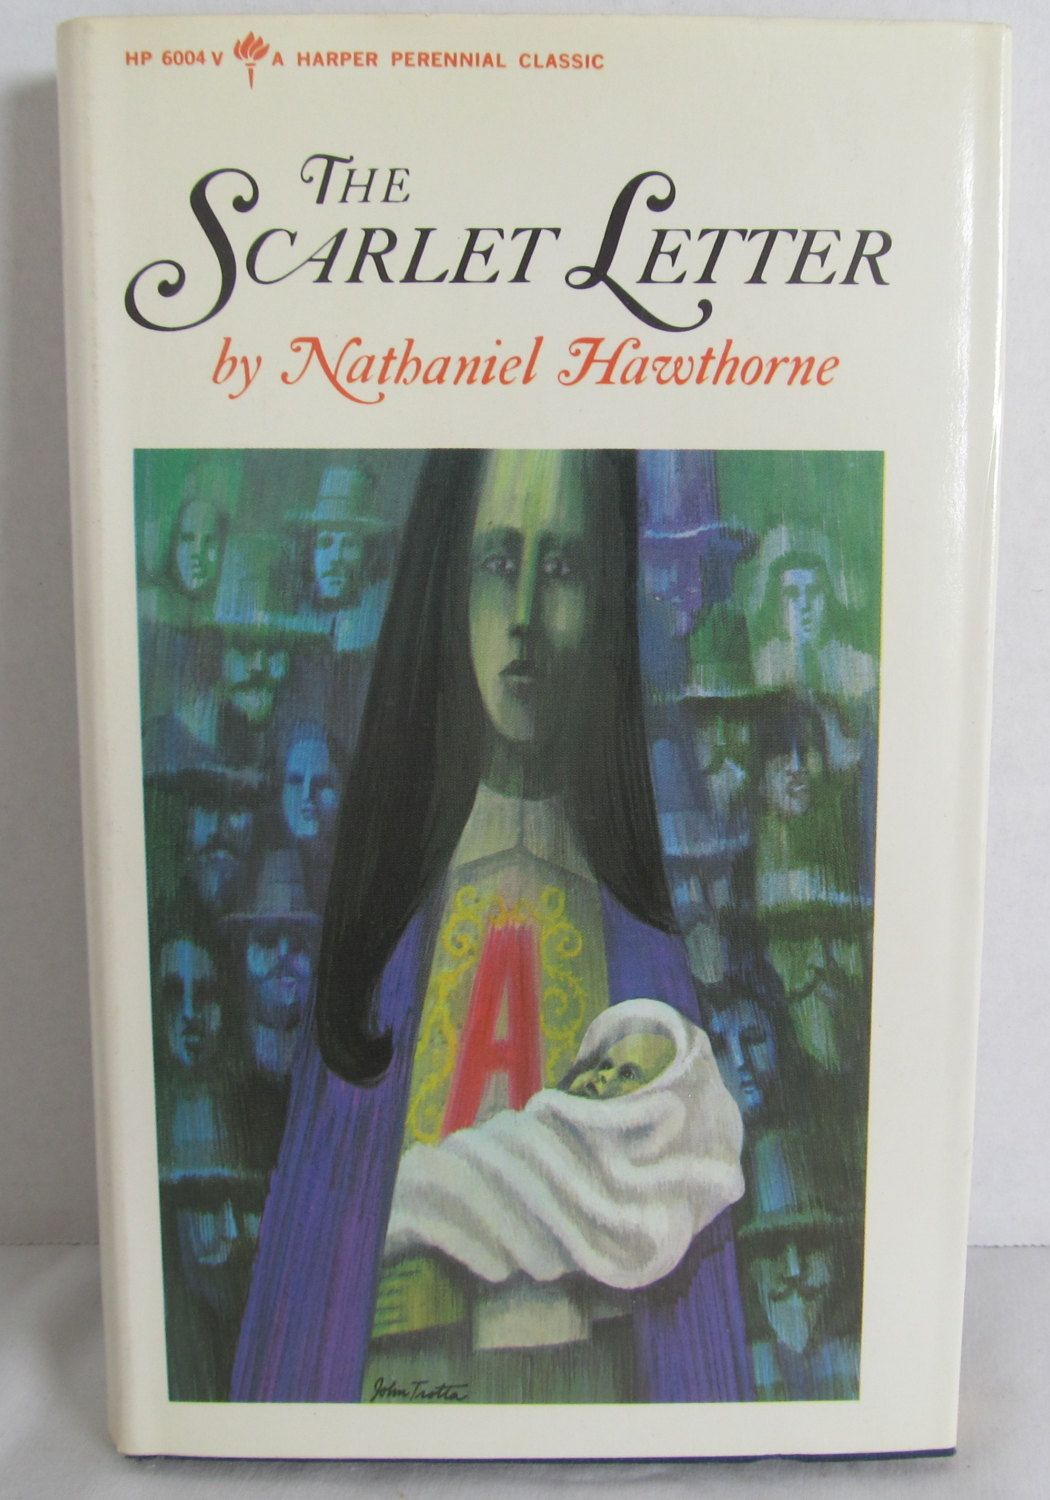 CLEARANCE SALE The Scarlet Letter by Nathaniel Hawthorne